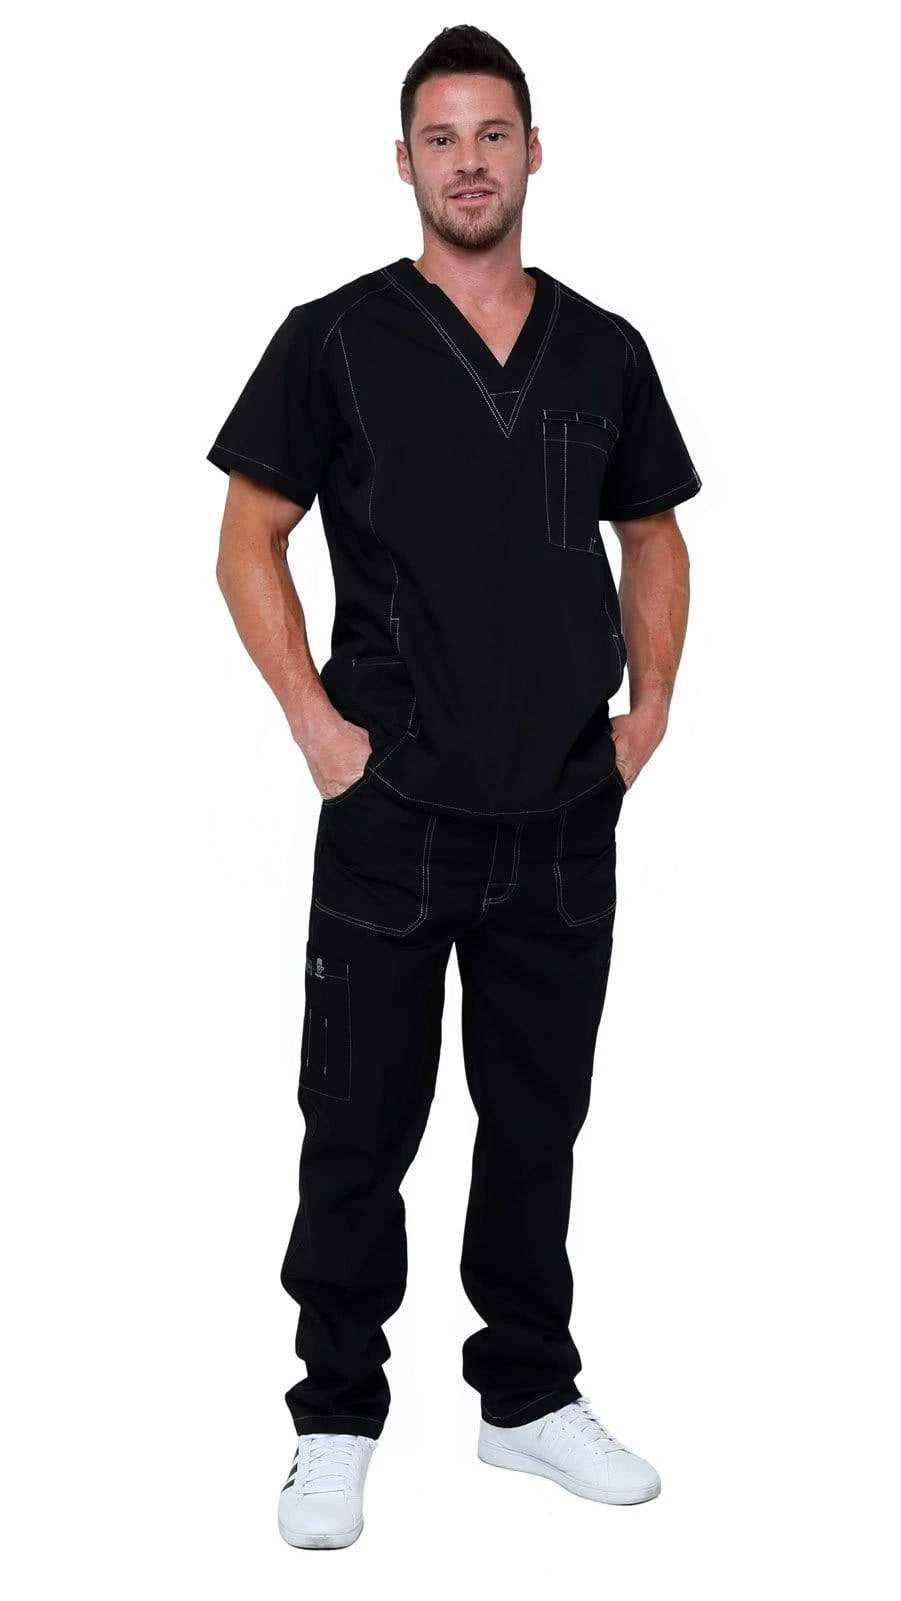 Men's Multi Pocket Utility Medical Scrubs - Dress A Med